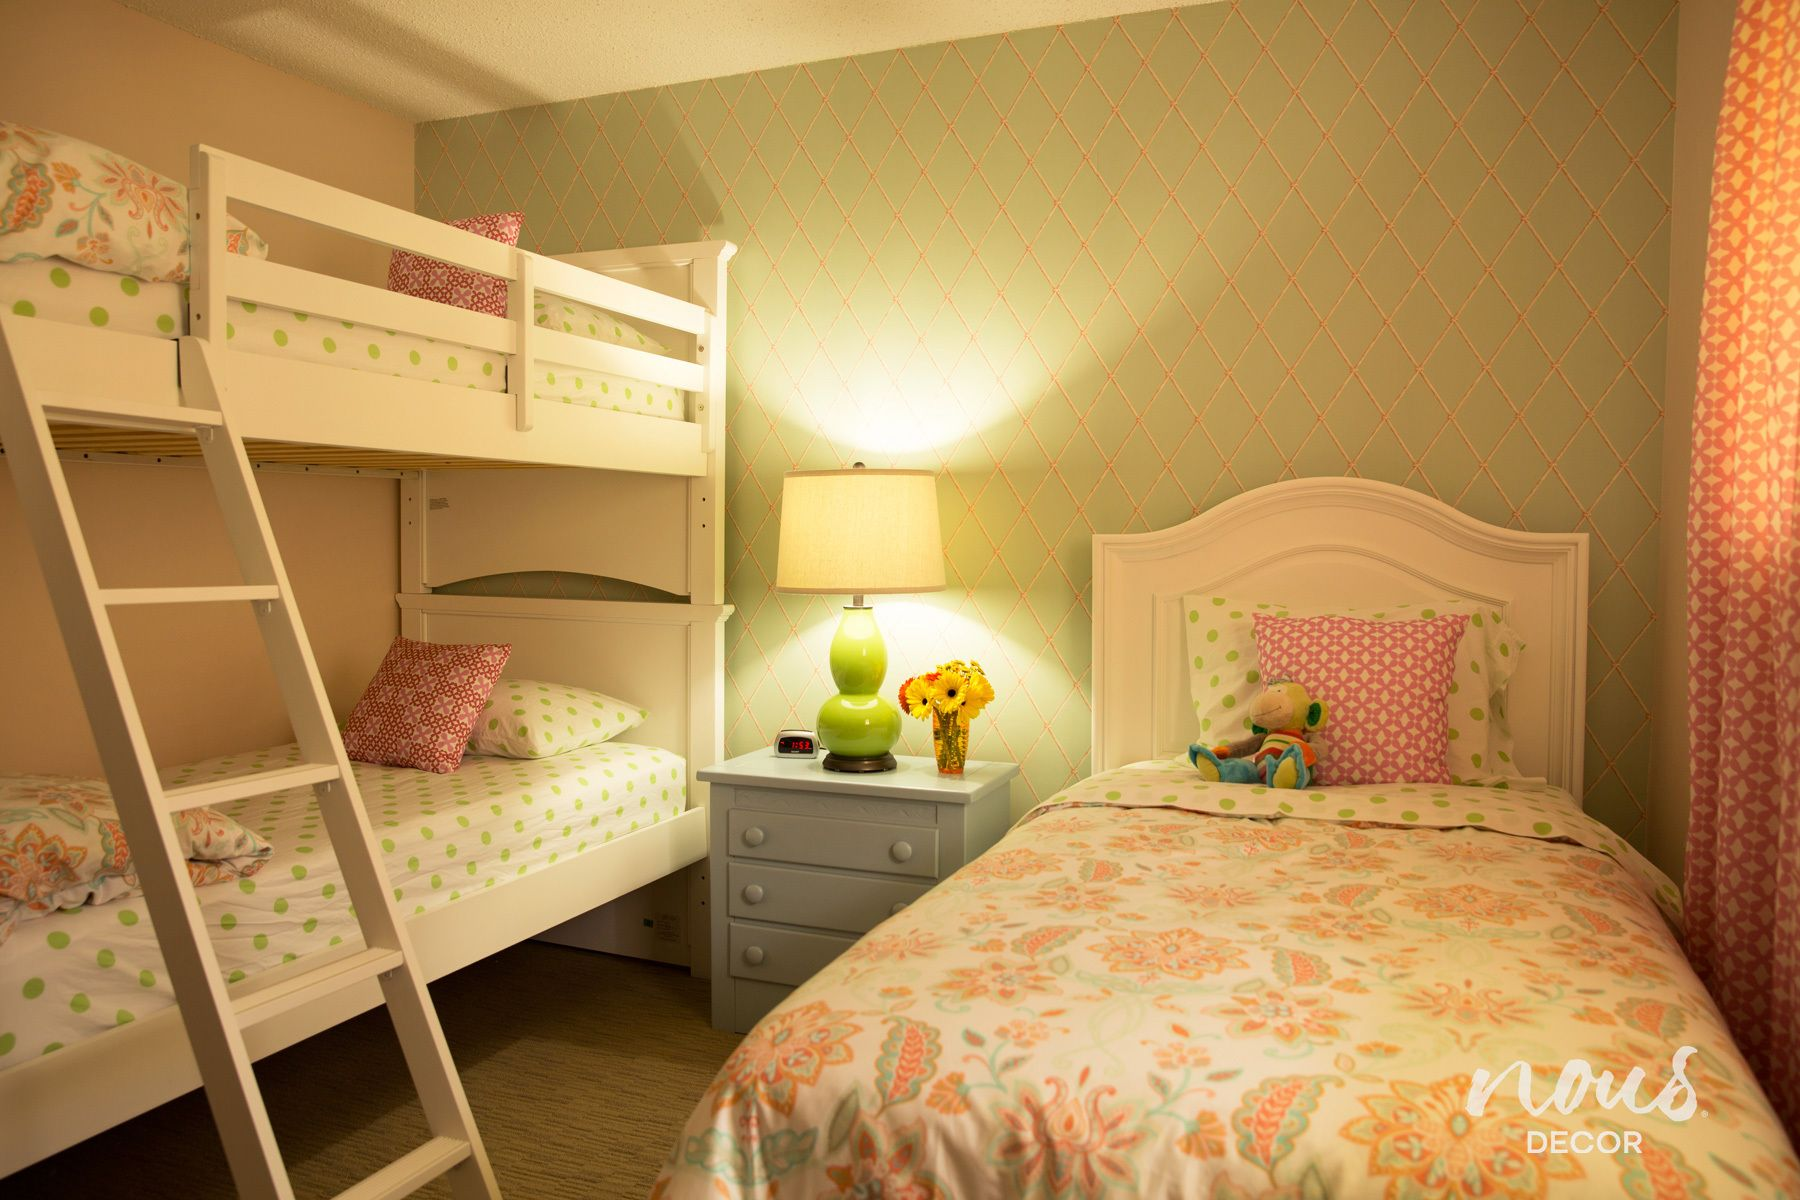 Before & After: A Bedroom for Three Girls | Inspiring Images ...